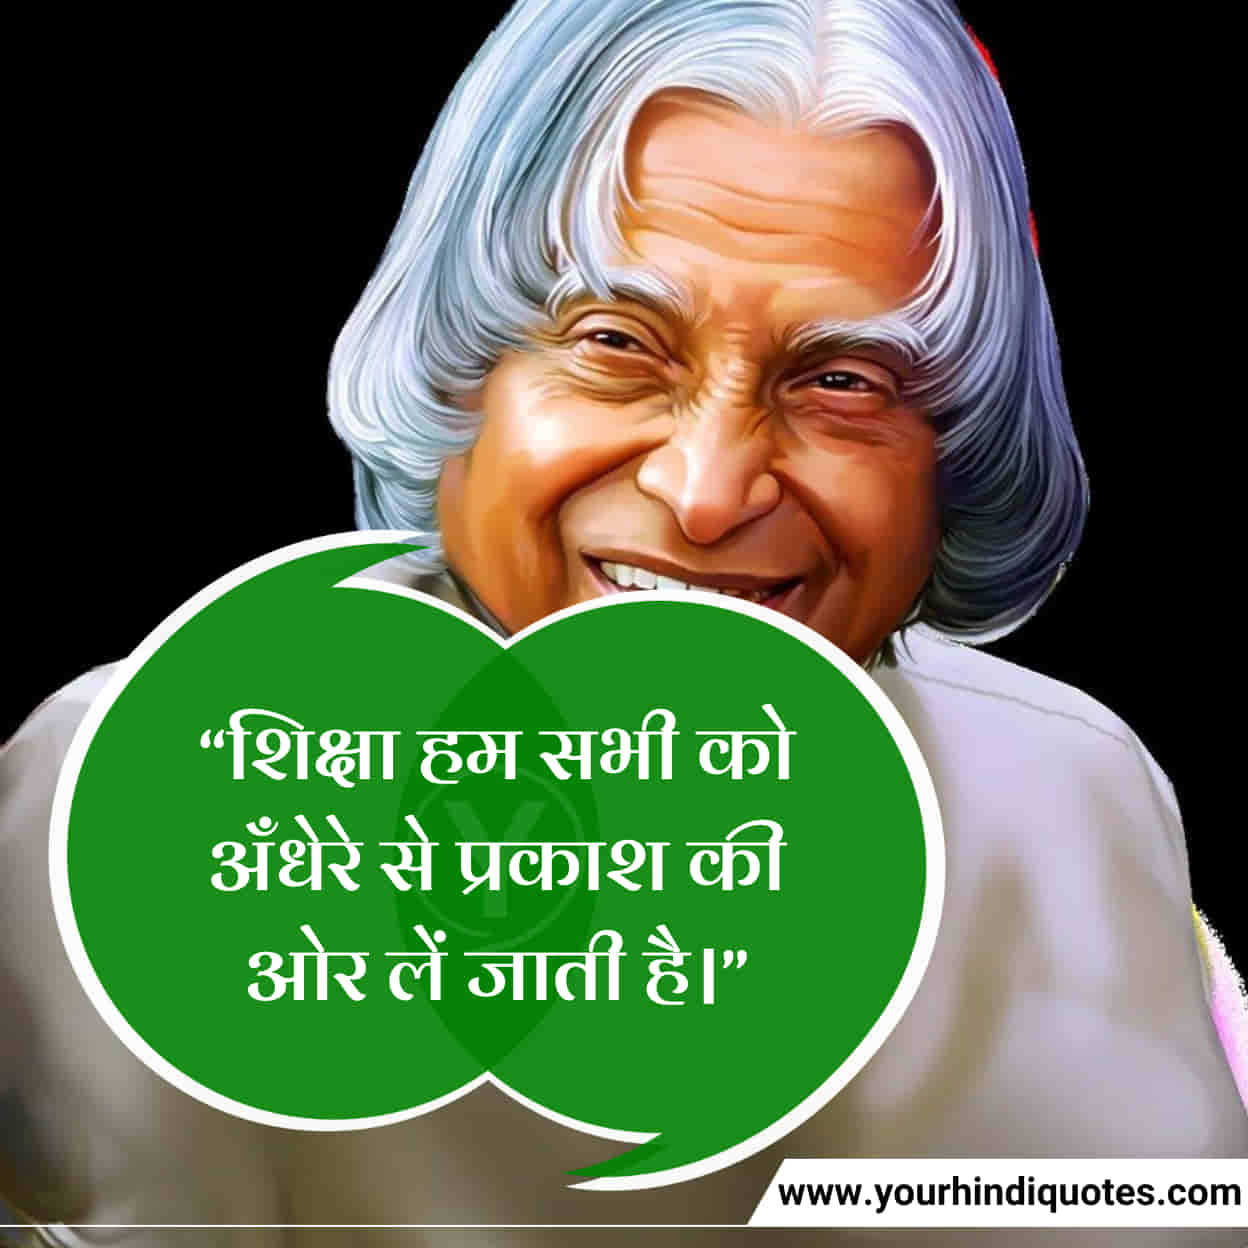 Best Education Quotes In Hindi